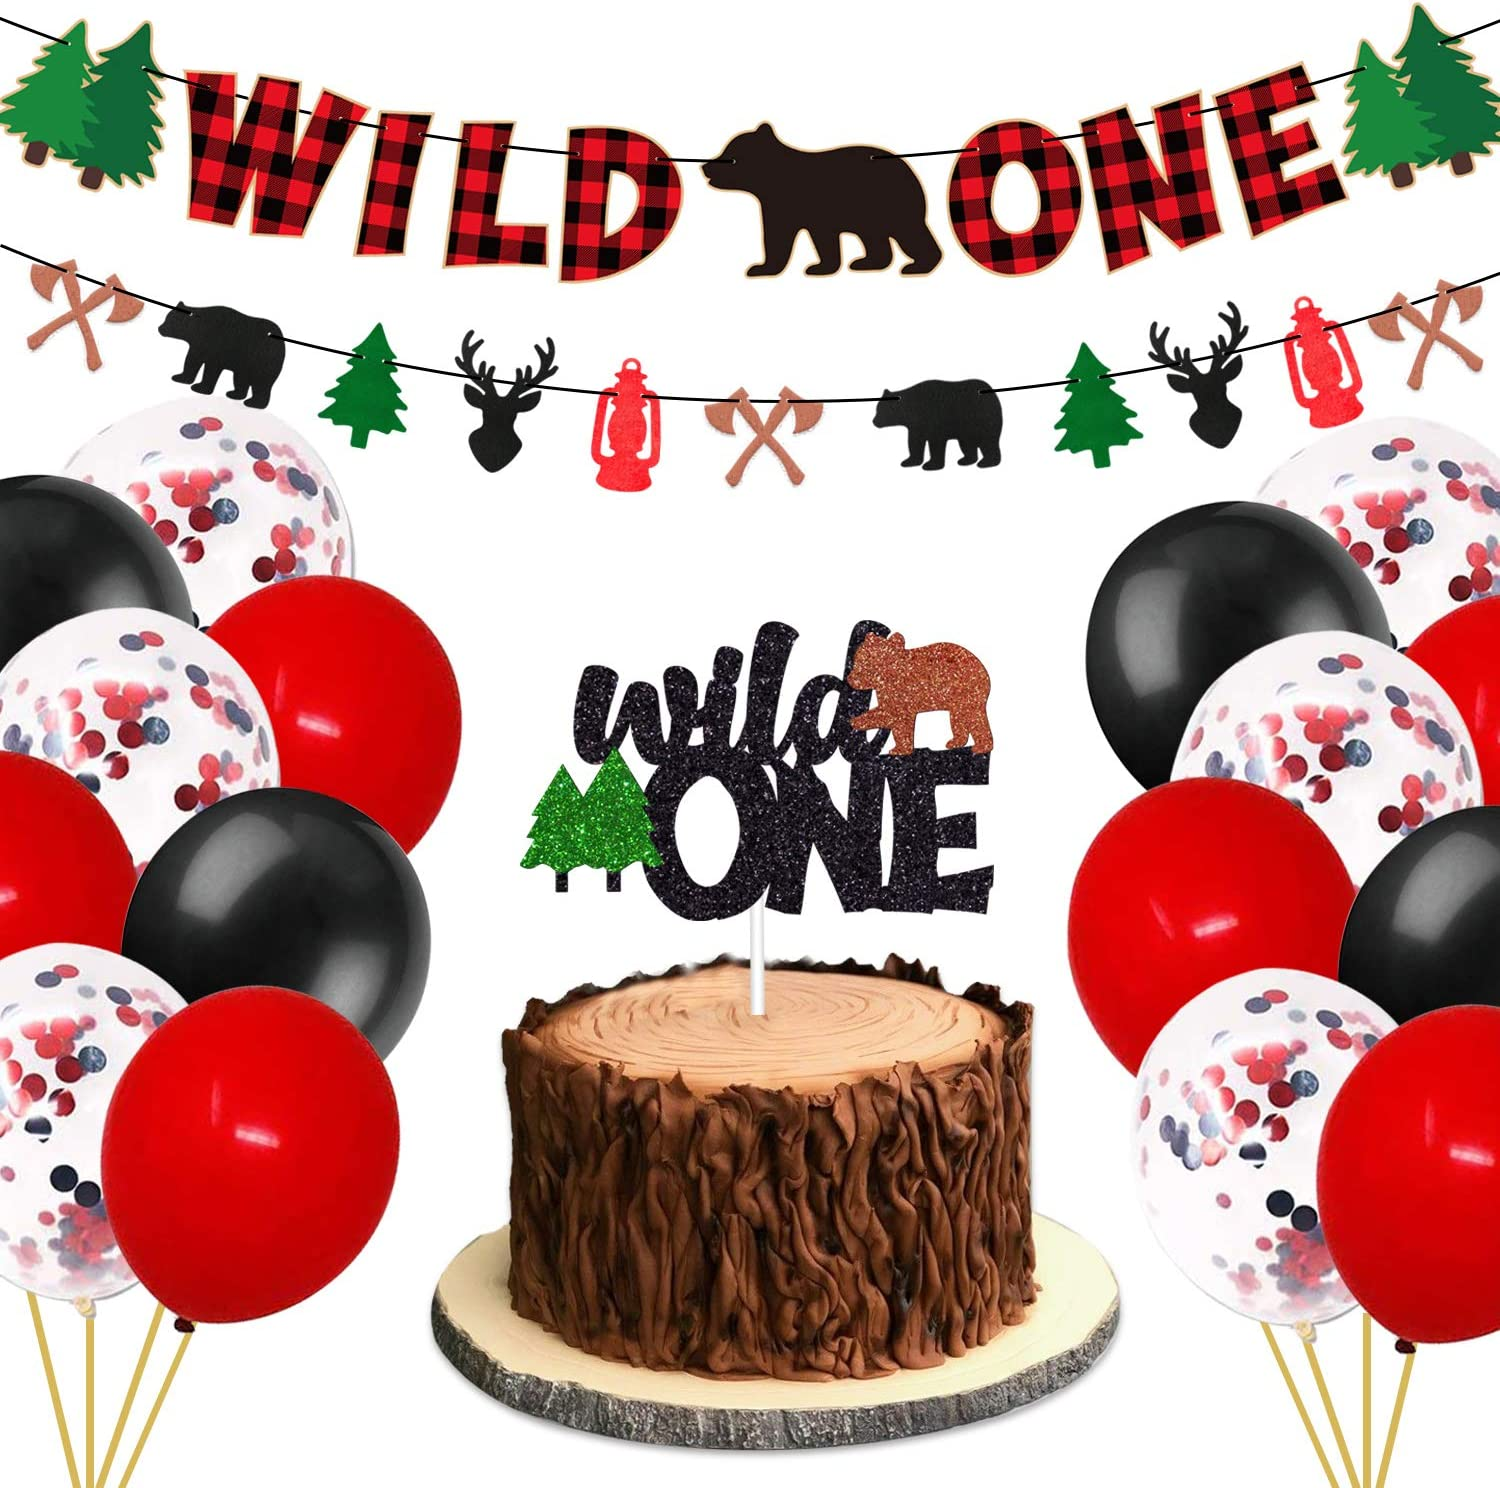 Wild One 1st Birthday Party Decorations Kit - Includes Glitter Cake Topper Buffalo Plaid Banner and Balloons - Winter Lumberjack Bear Woodland Camping Hunting Themed Baby Shower First Bday Party Supplies